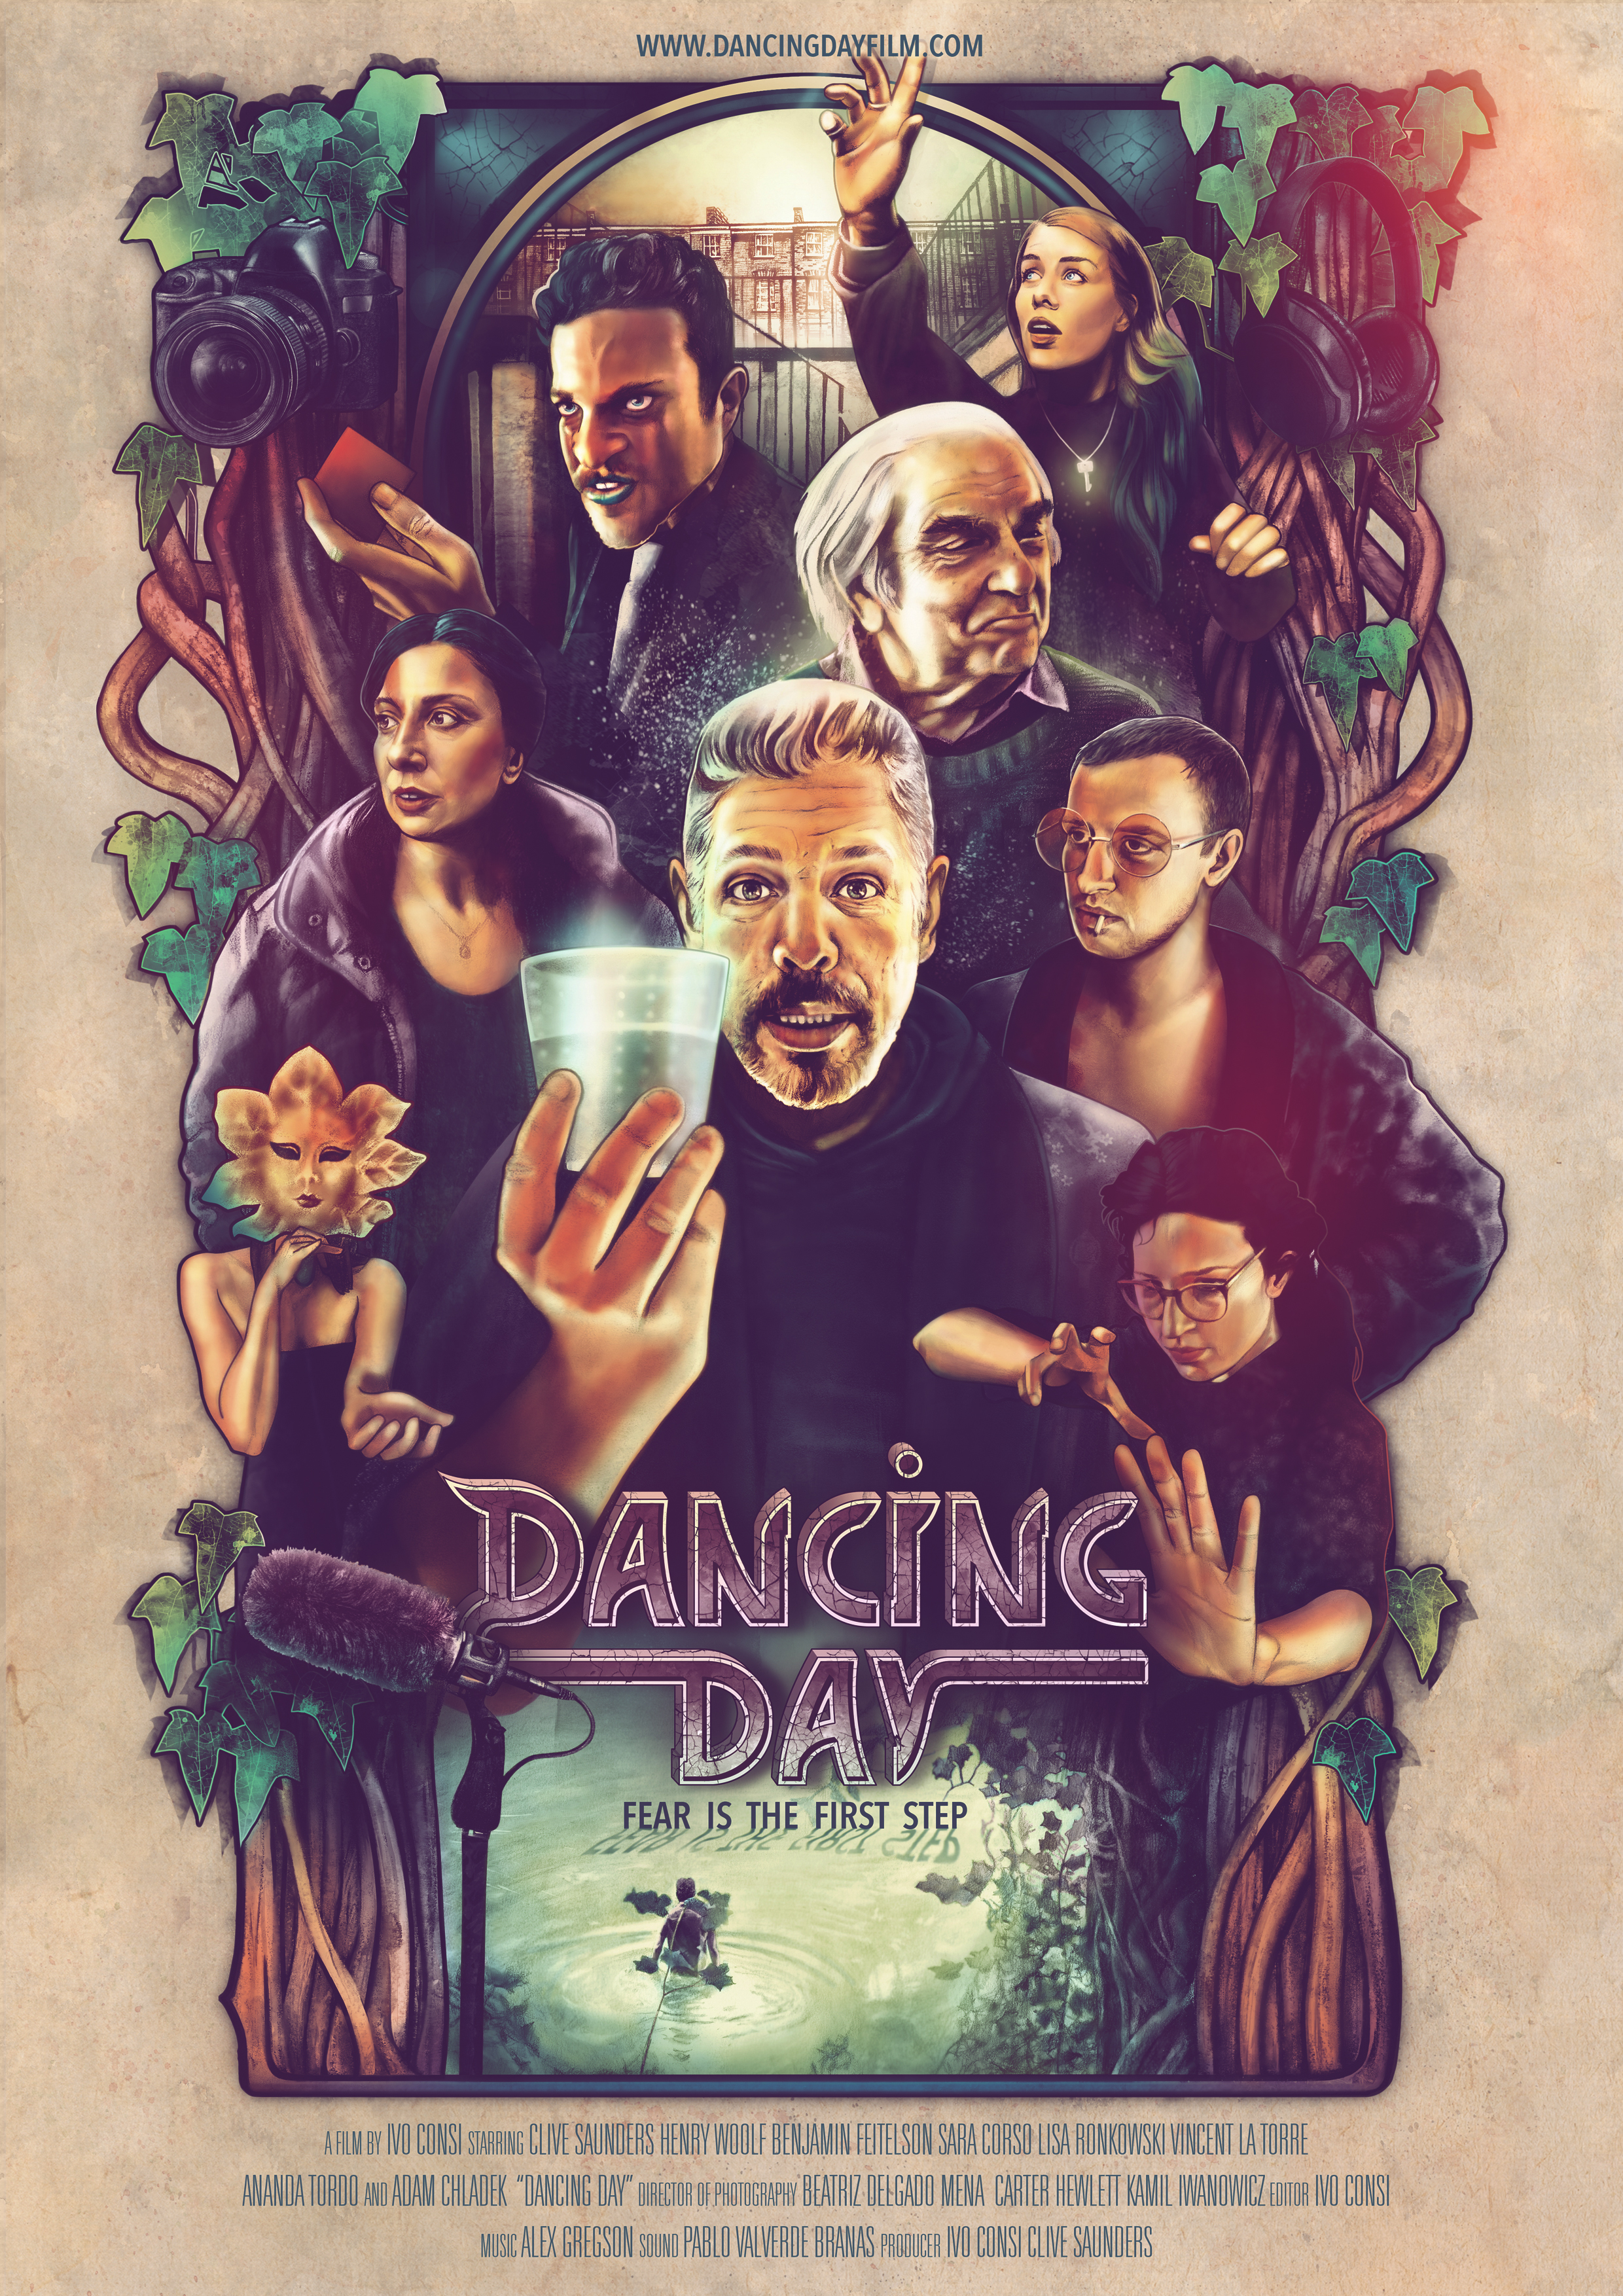 dancing day poster photoshop.jpg